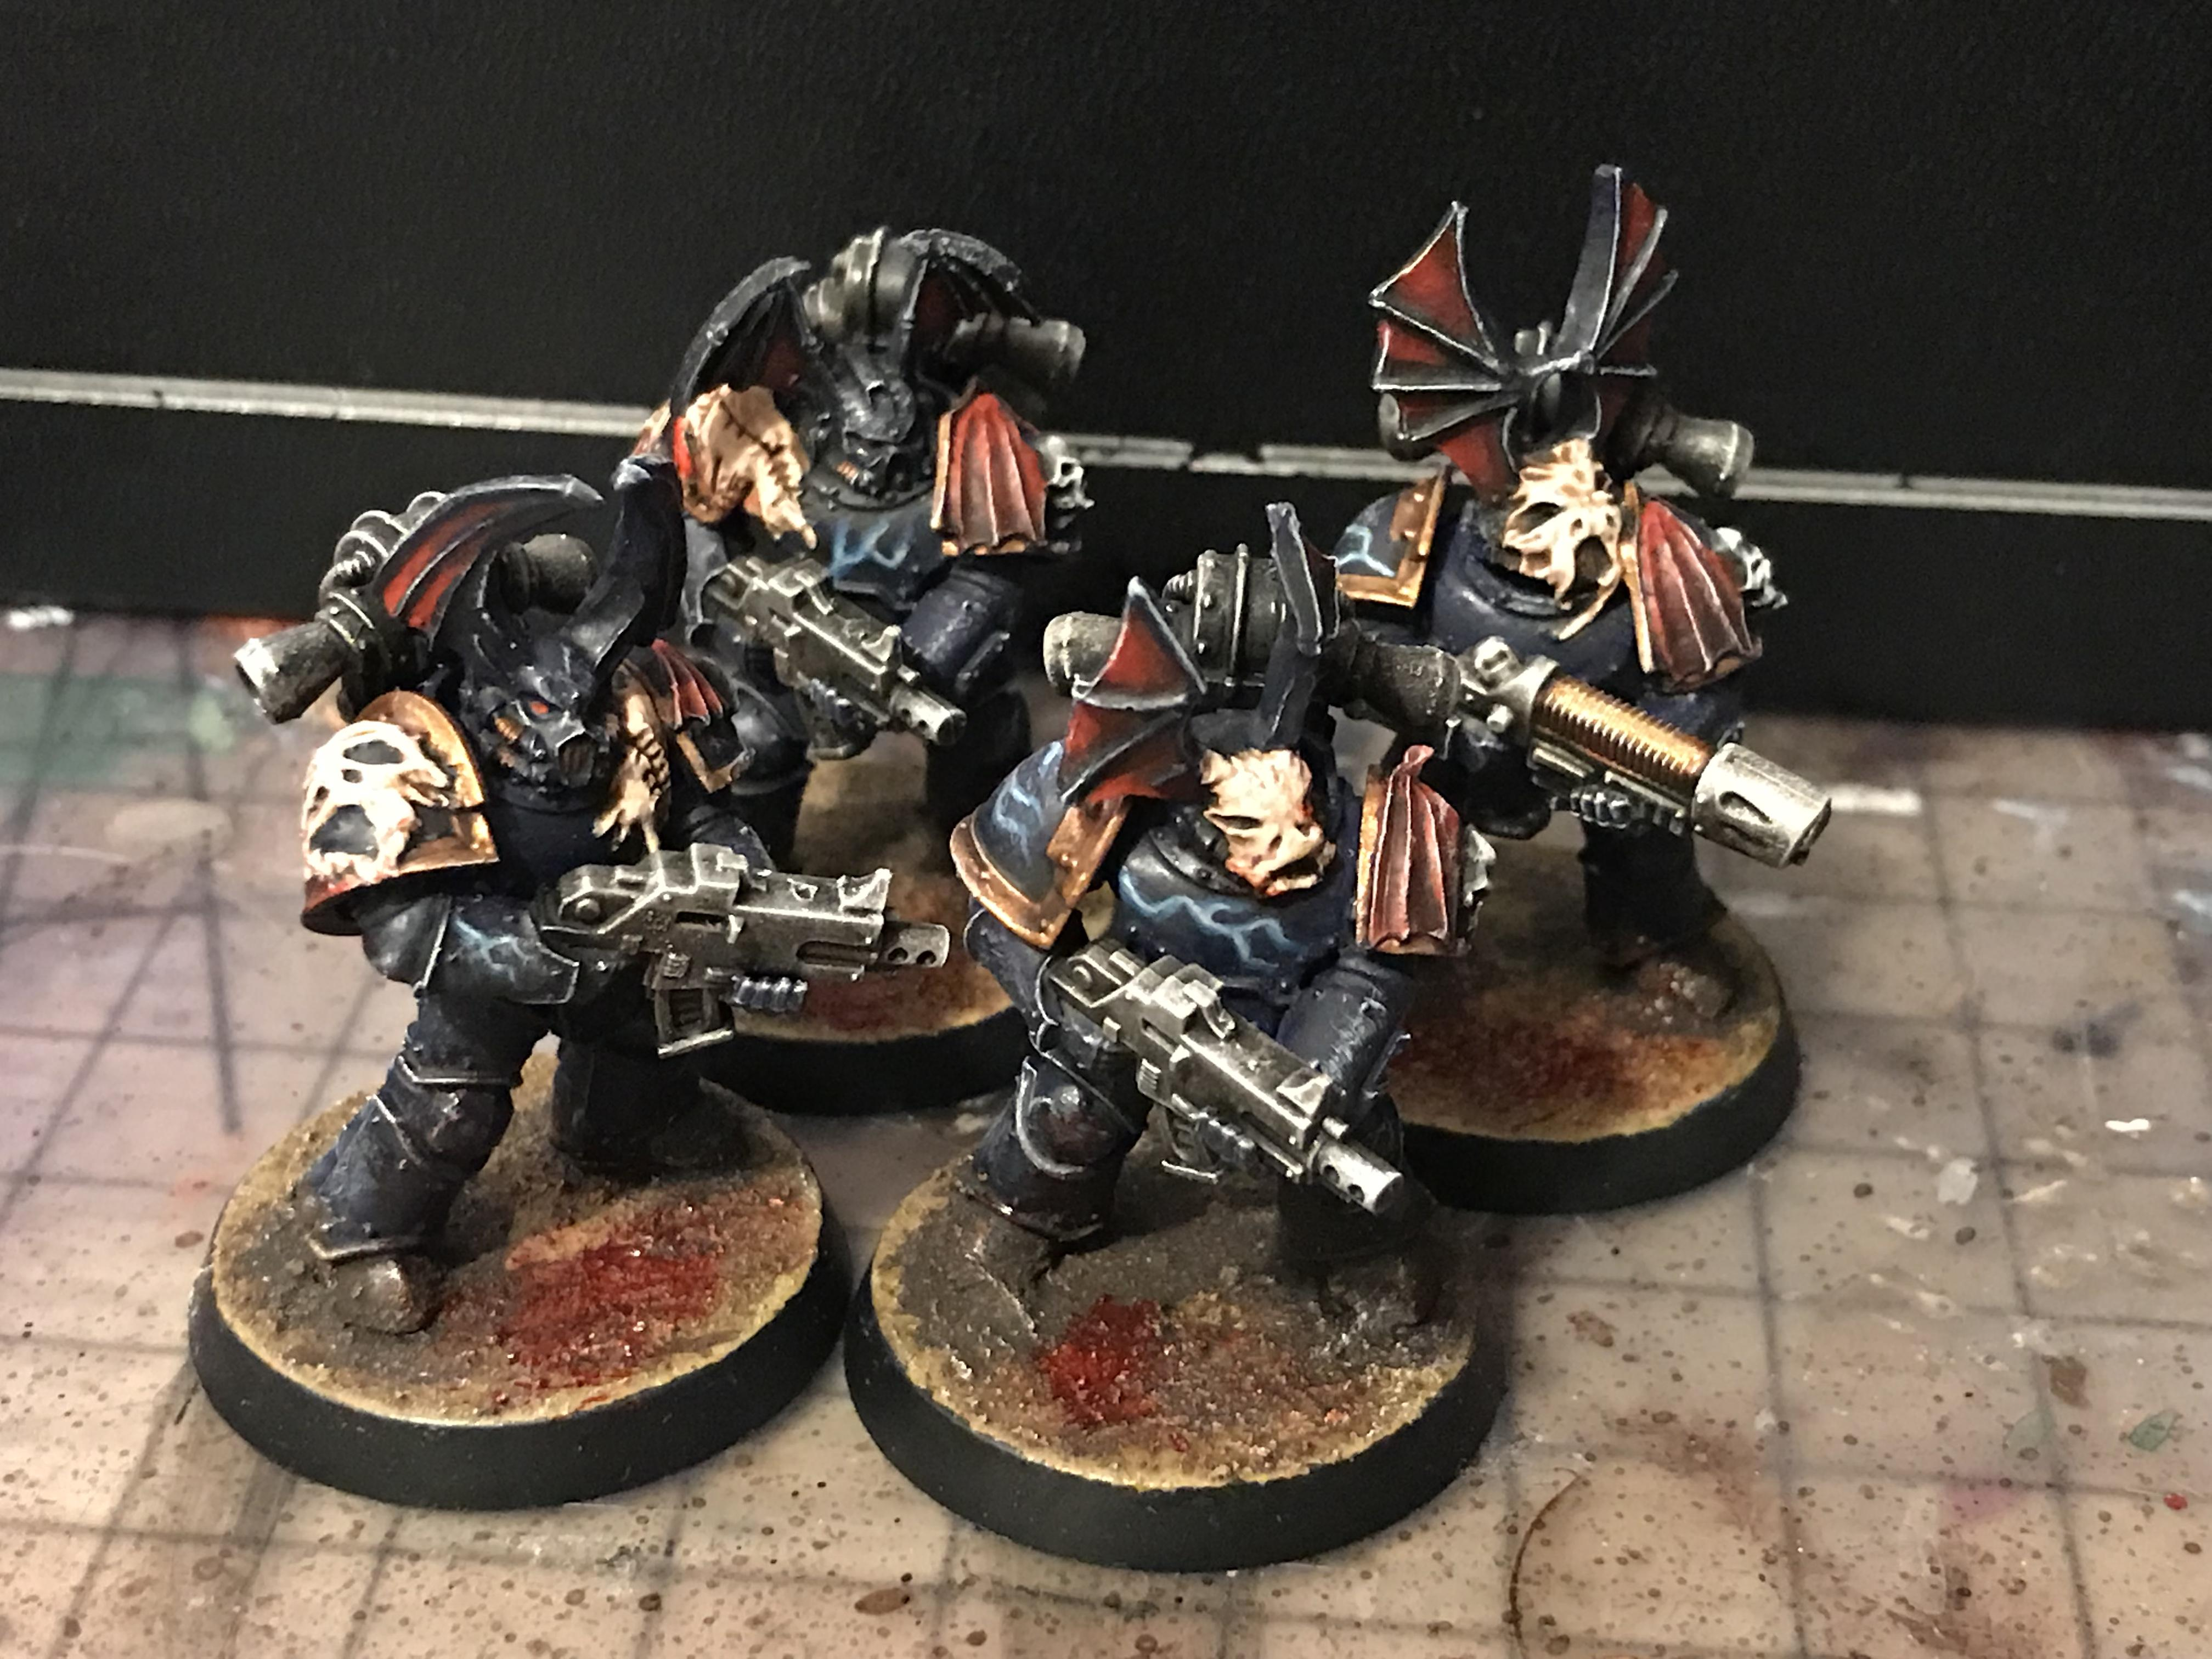 Armor, Army, Astardes, Black, Blood, Chaos, Conversion, Corrupted, Crimson, Curze, Death, Evil, Flayed, Flayer, Flesh, Grisly, Hand, Heresy, Horrors, Horus, Kaos, Kill, Killers, Kit Bash, Konrad, Legion, Legionnaire, Legionnaires, Legionnes, Legions, Lightning, Lord, Lords, Man, Mask, Murder, Murderers, Night, Night Lords, Pained, Pirate, Pirates, Power, Primarch, Rage, Raiders, Reaver, Reavers, Red, Renegade, Renegades, Saboteur, Sculpting, Shadow, Shroud, Skin, Soul, Space, Space Marines, Stalkers, Stealth, Tactics, Team, Terror, Torture, Traitor, Traitors, Trophies, Twisted, Vile, Violence, Violent